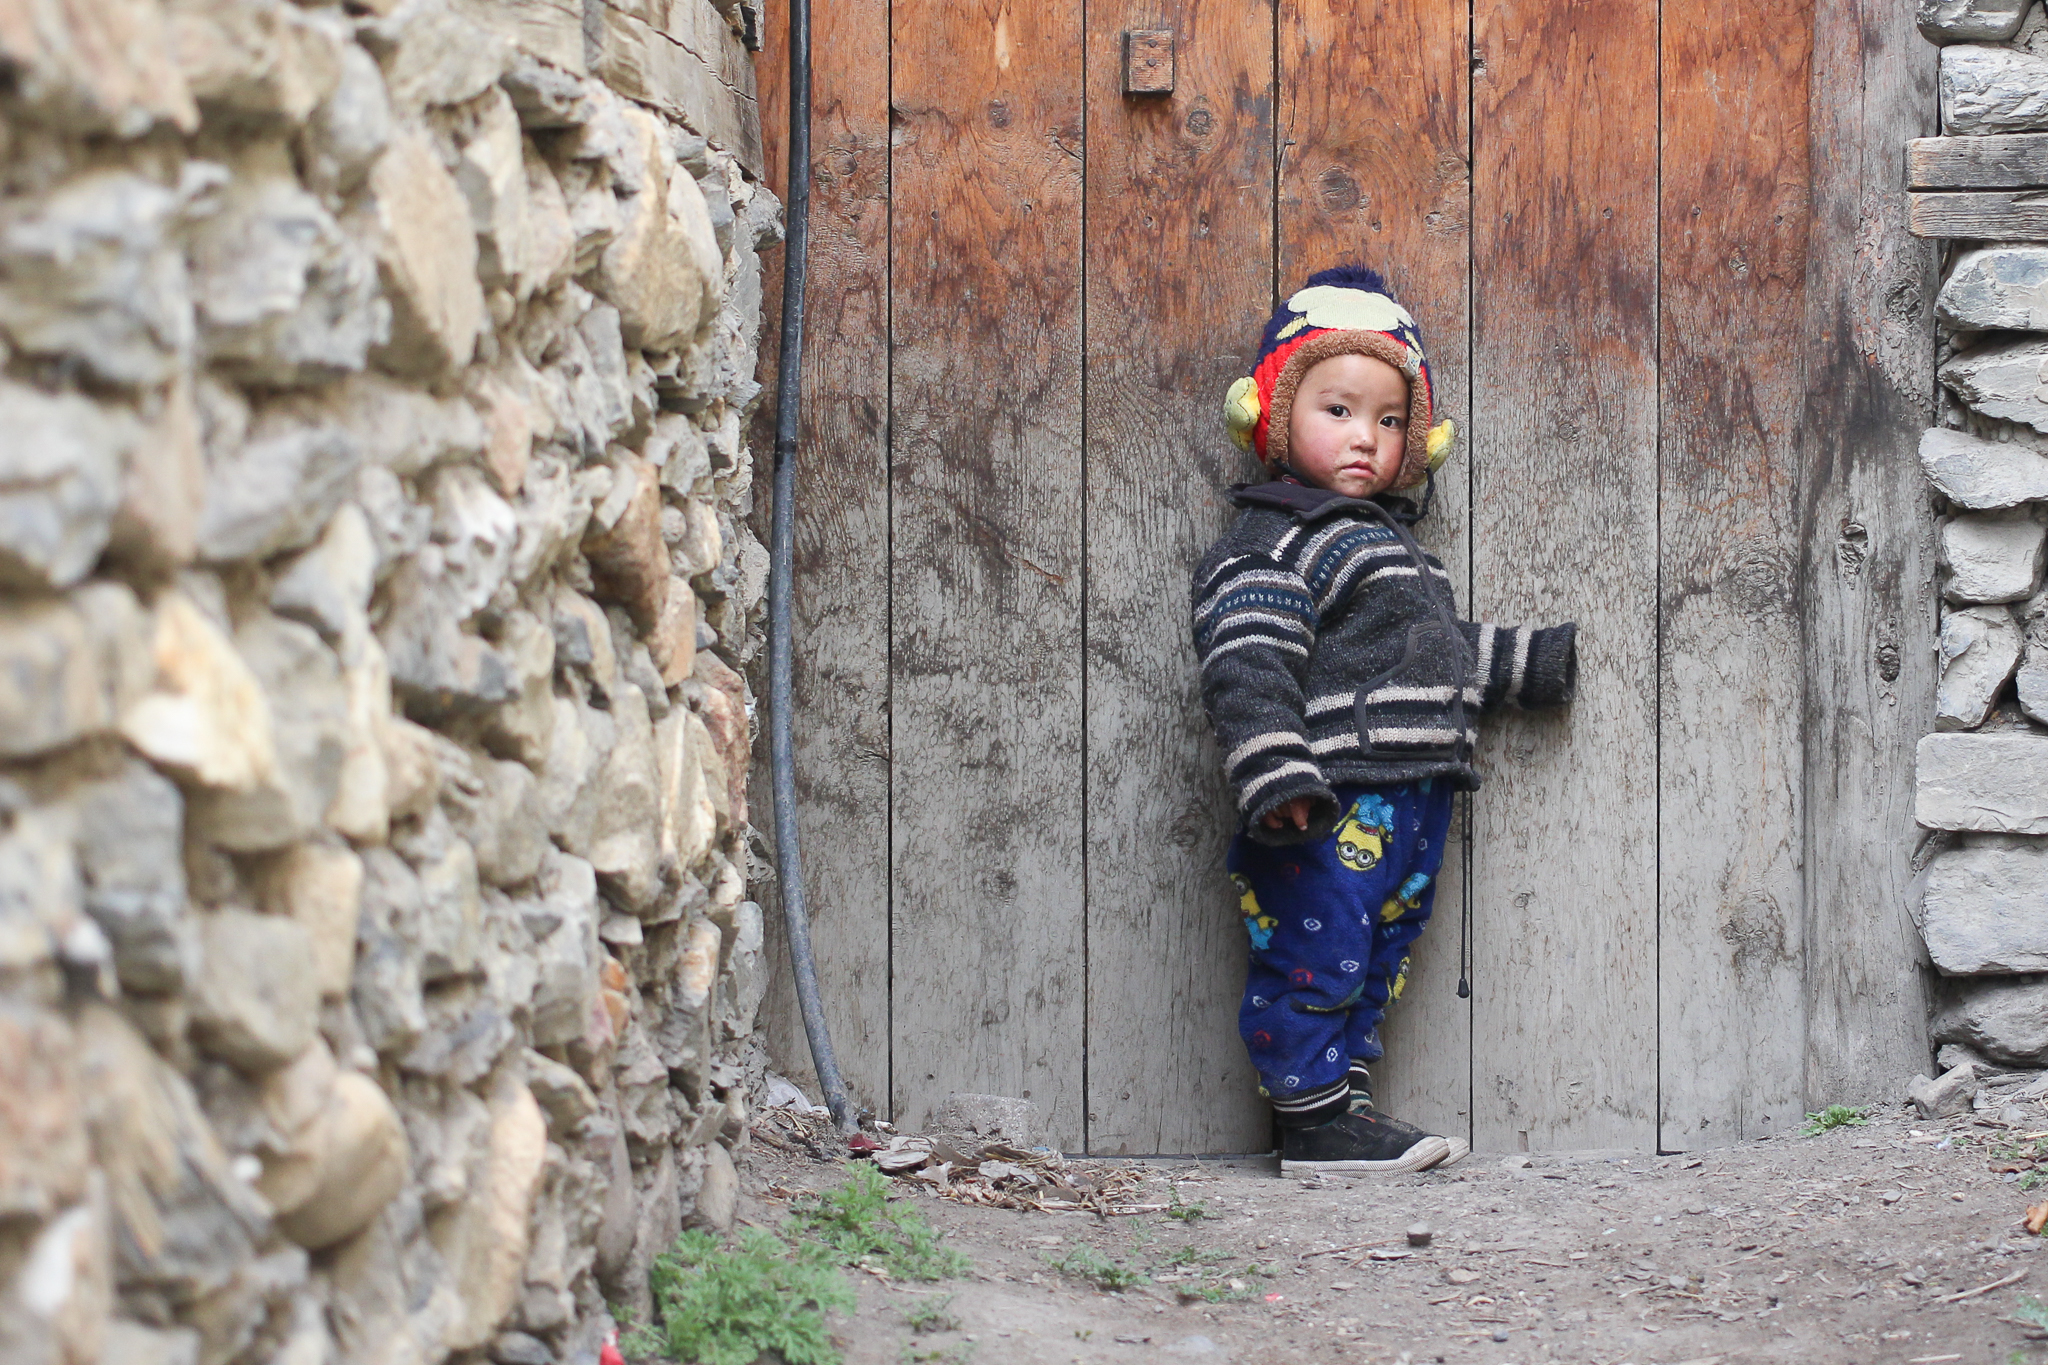 A little boy in Manang, a village at 3,519m where trekkers stop to acclimatise for a couple of days